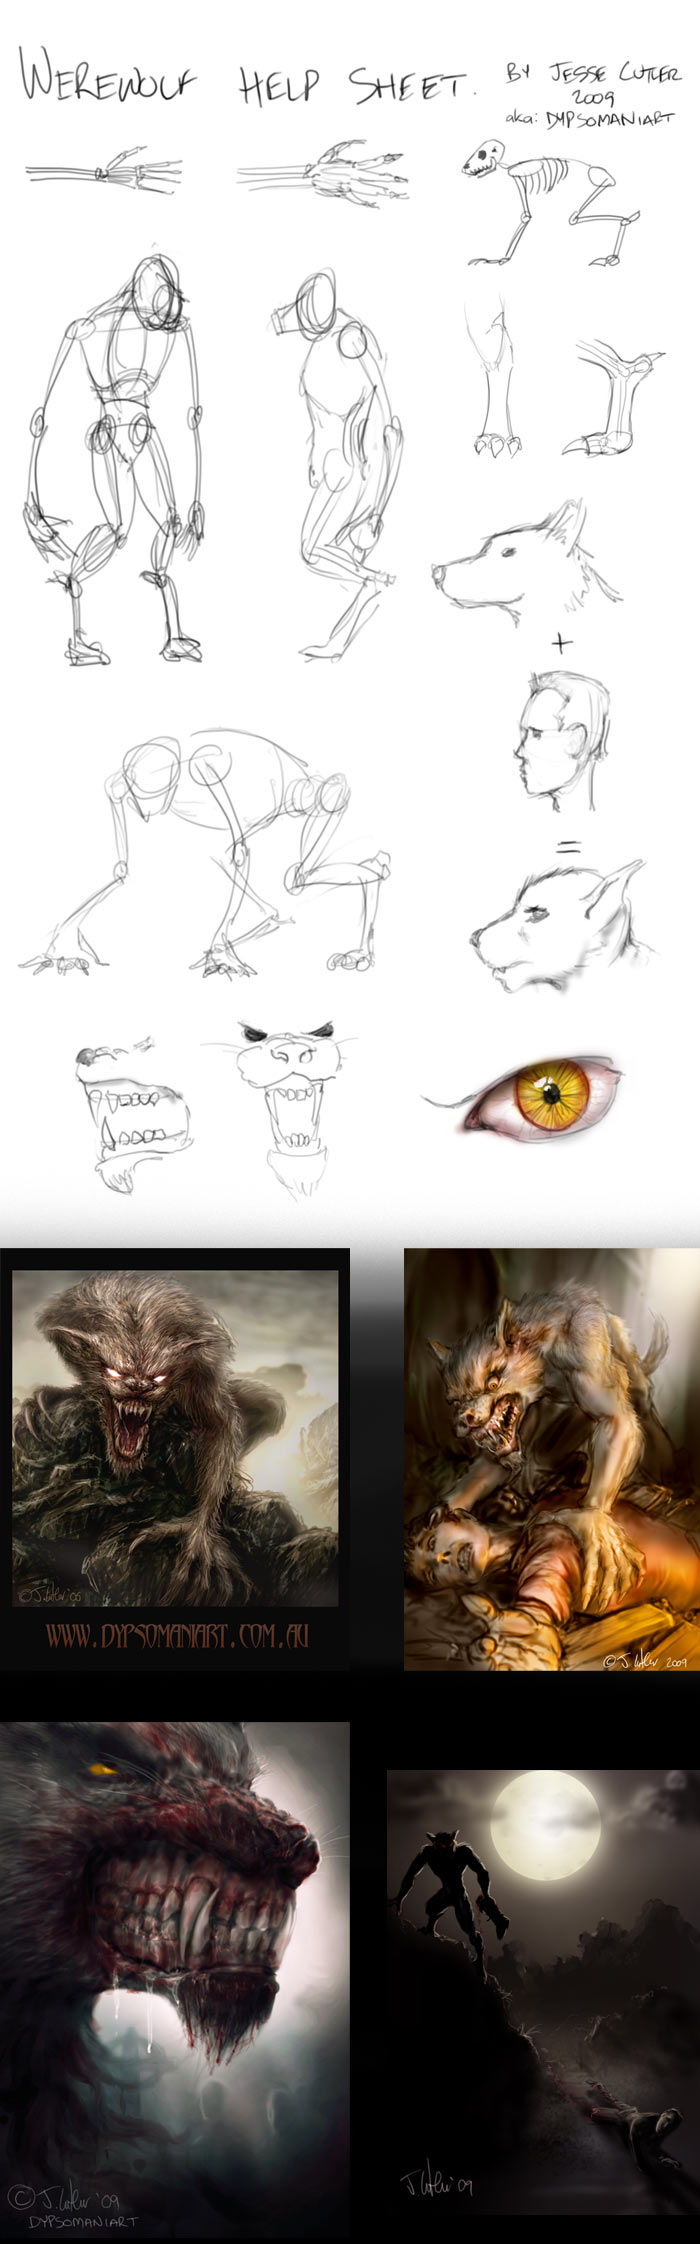 werewolf help sheet by dypsomaniart